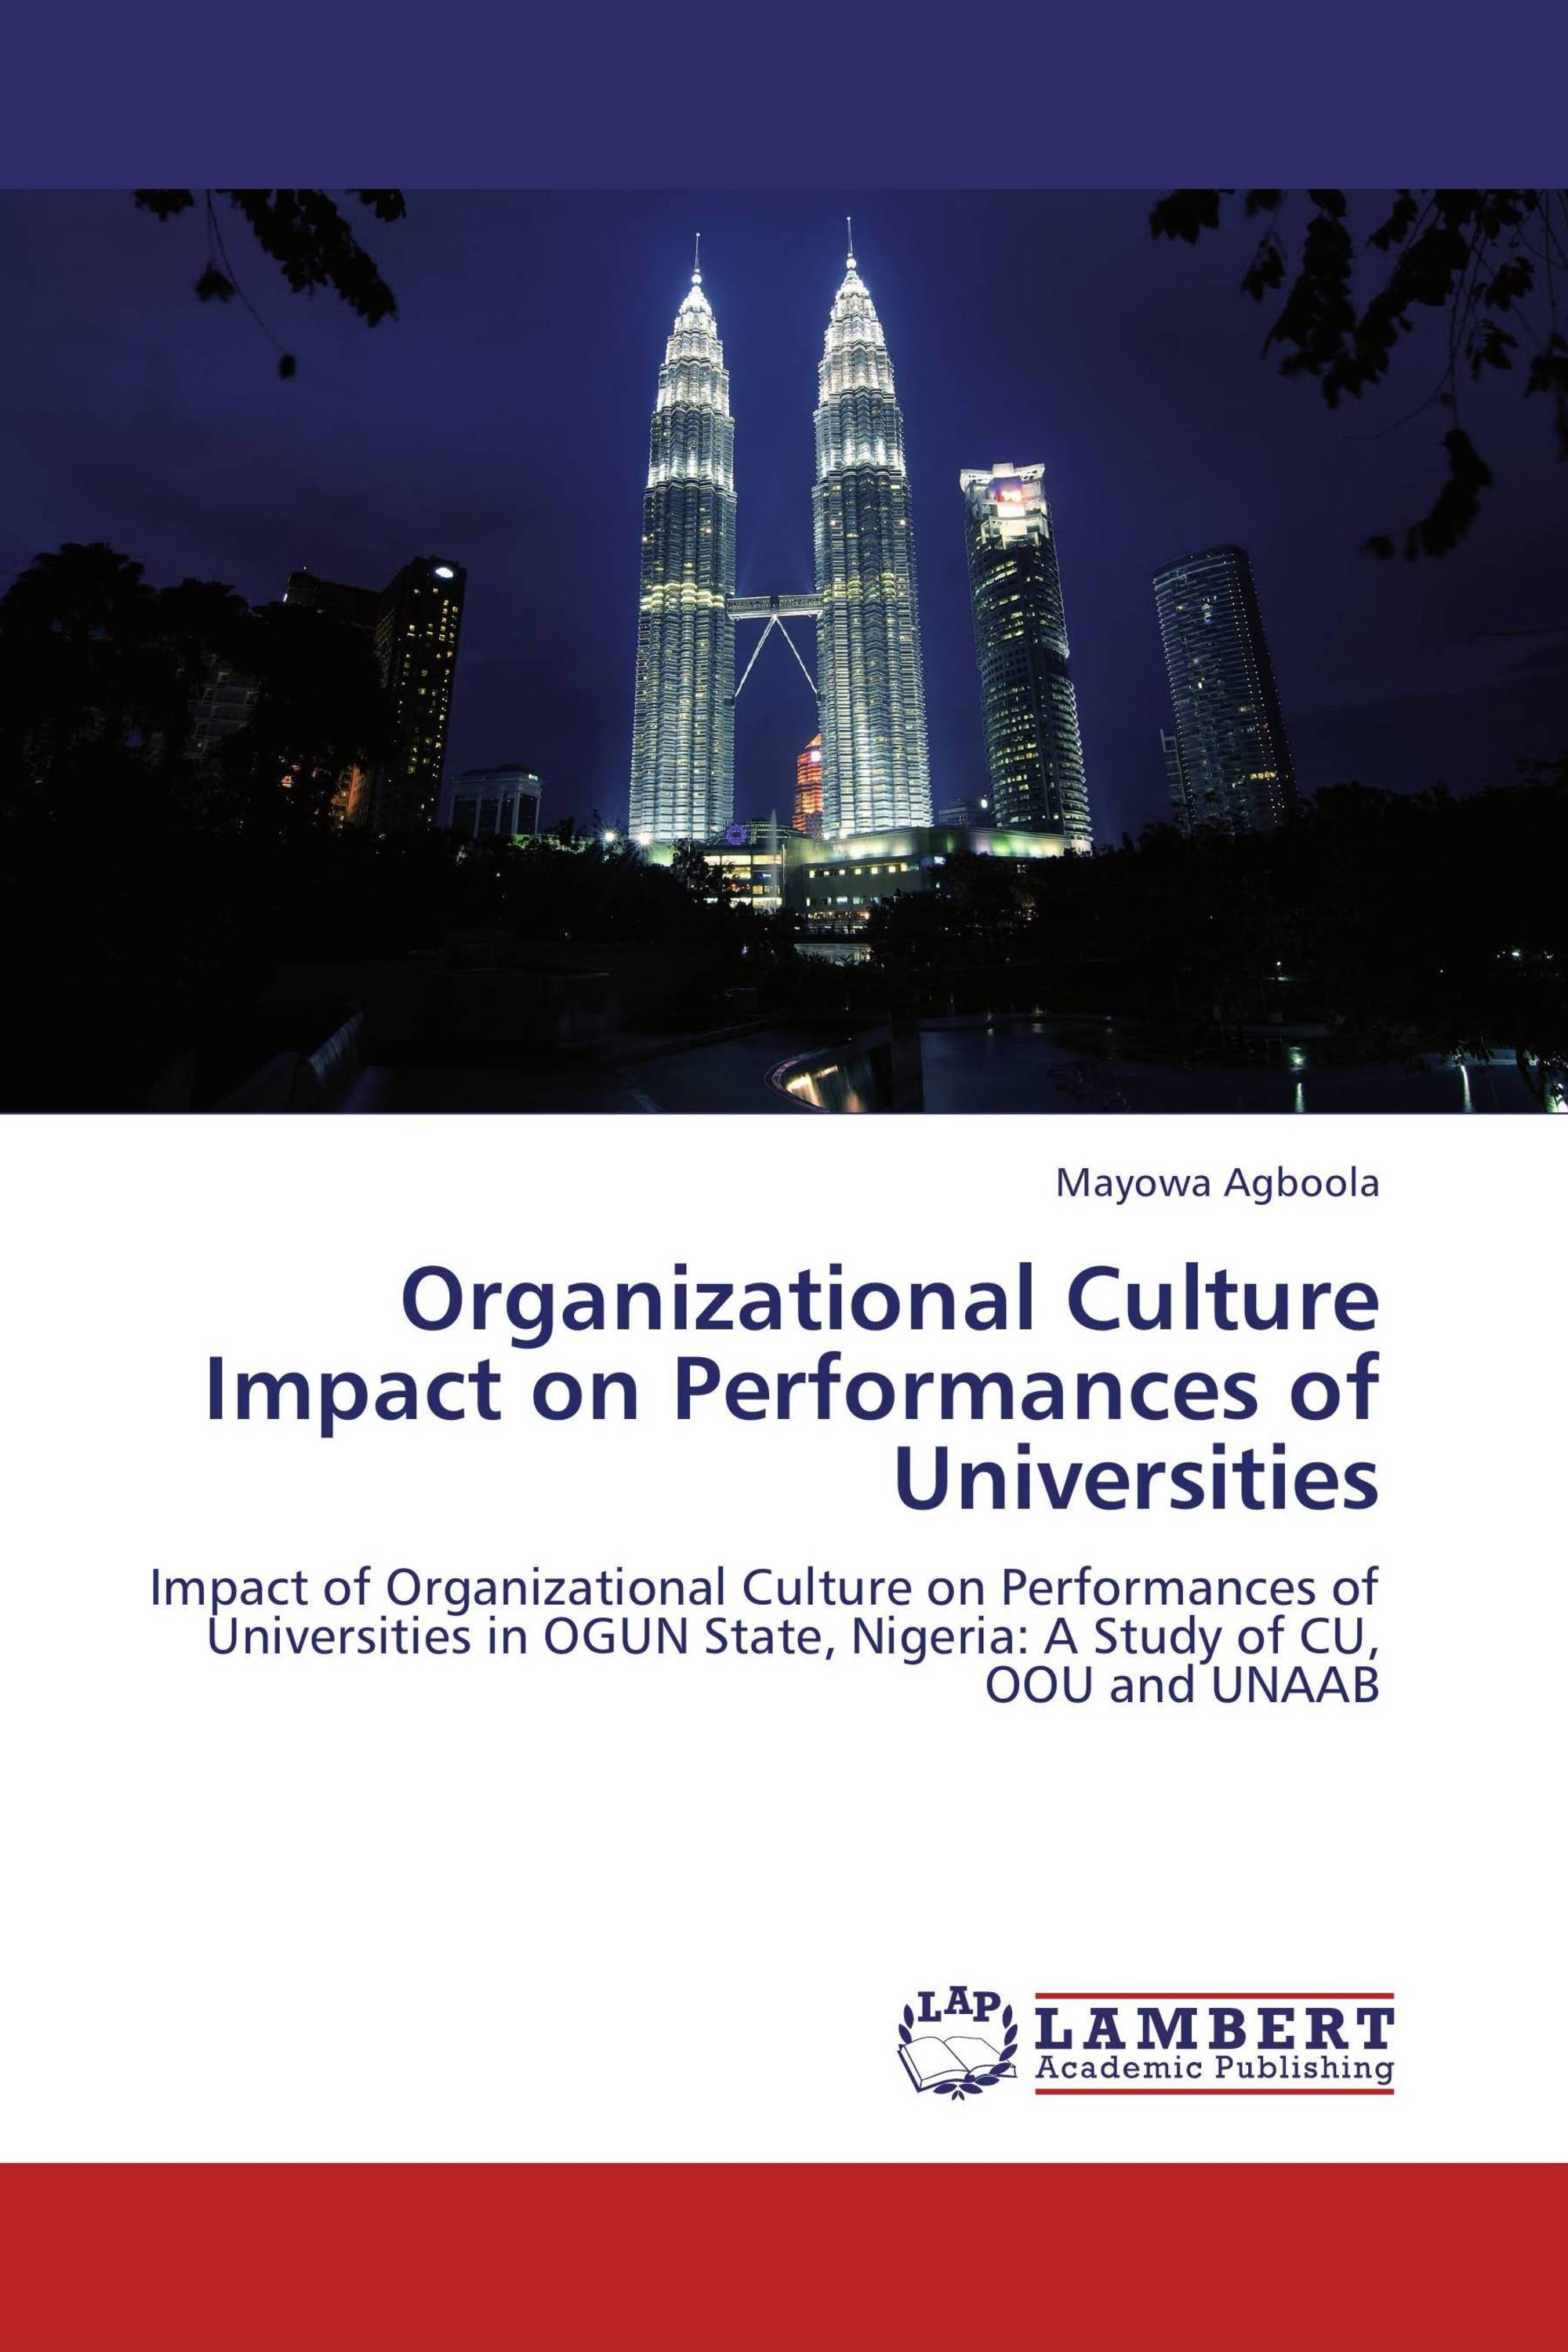 Organizational Culture Impact on Performances of Universities